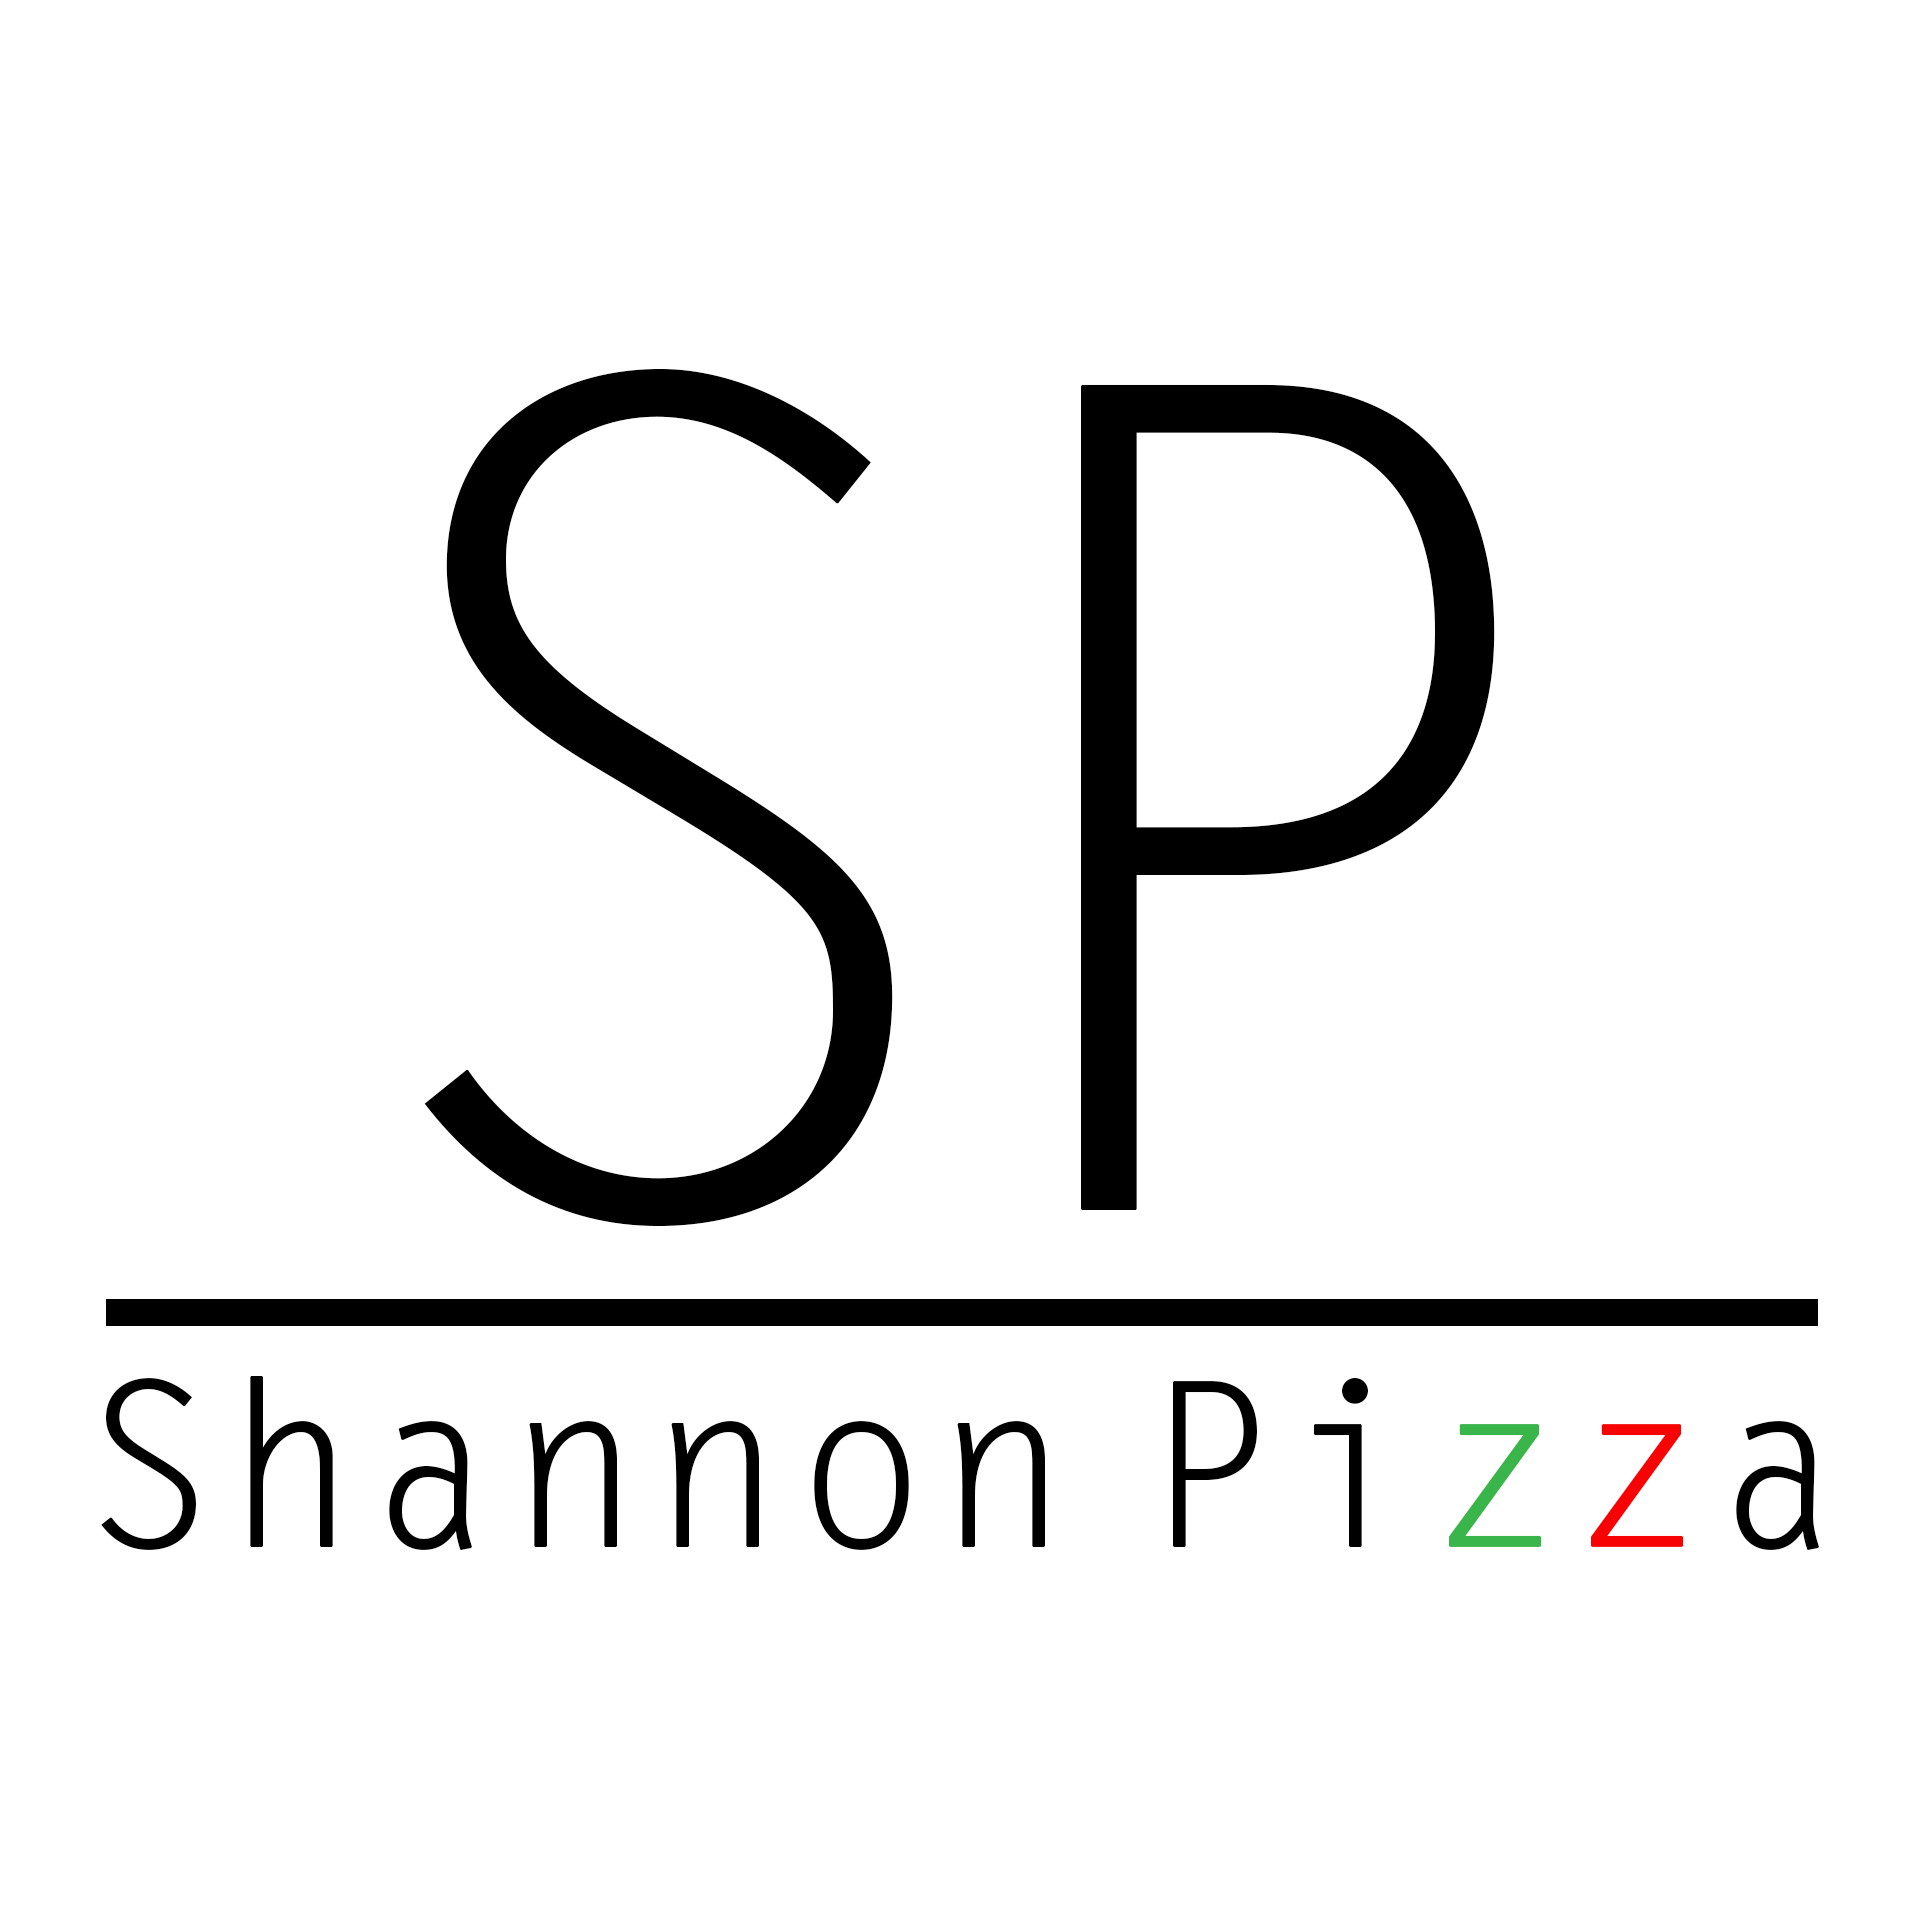 Shannon Pizza